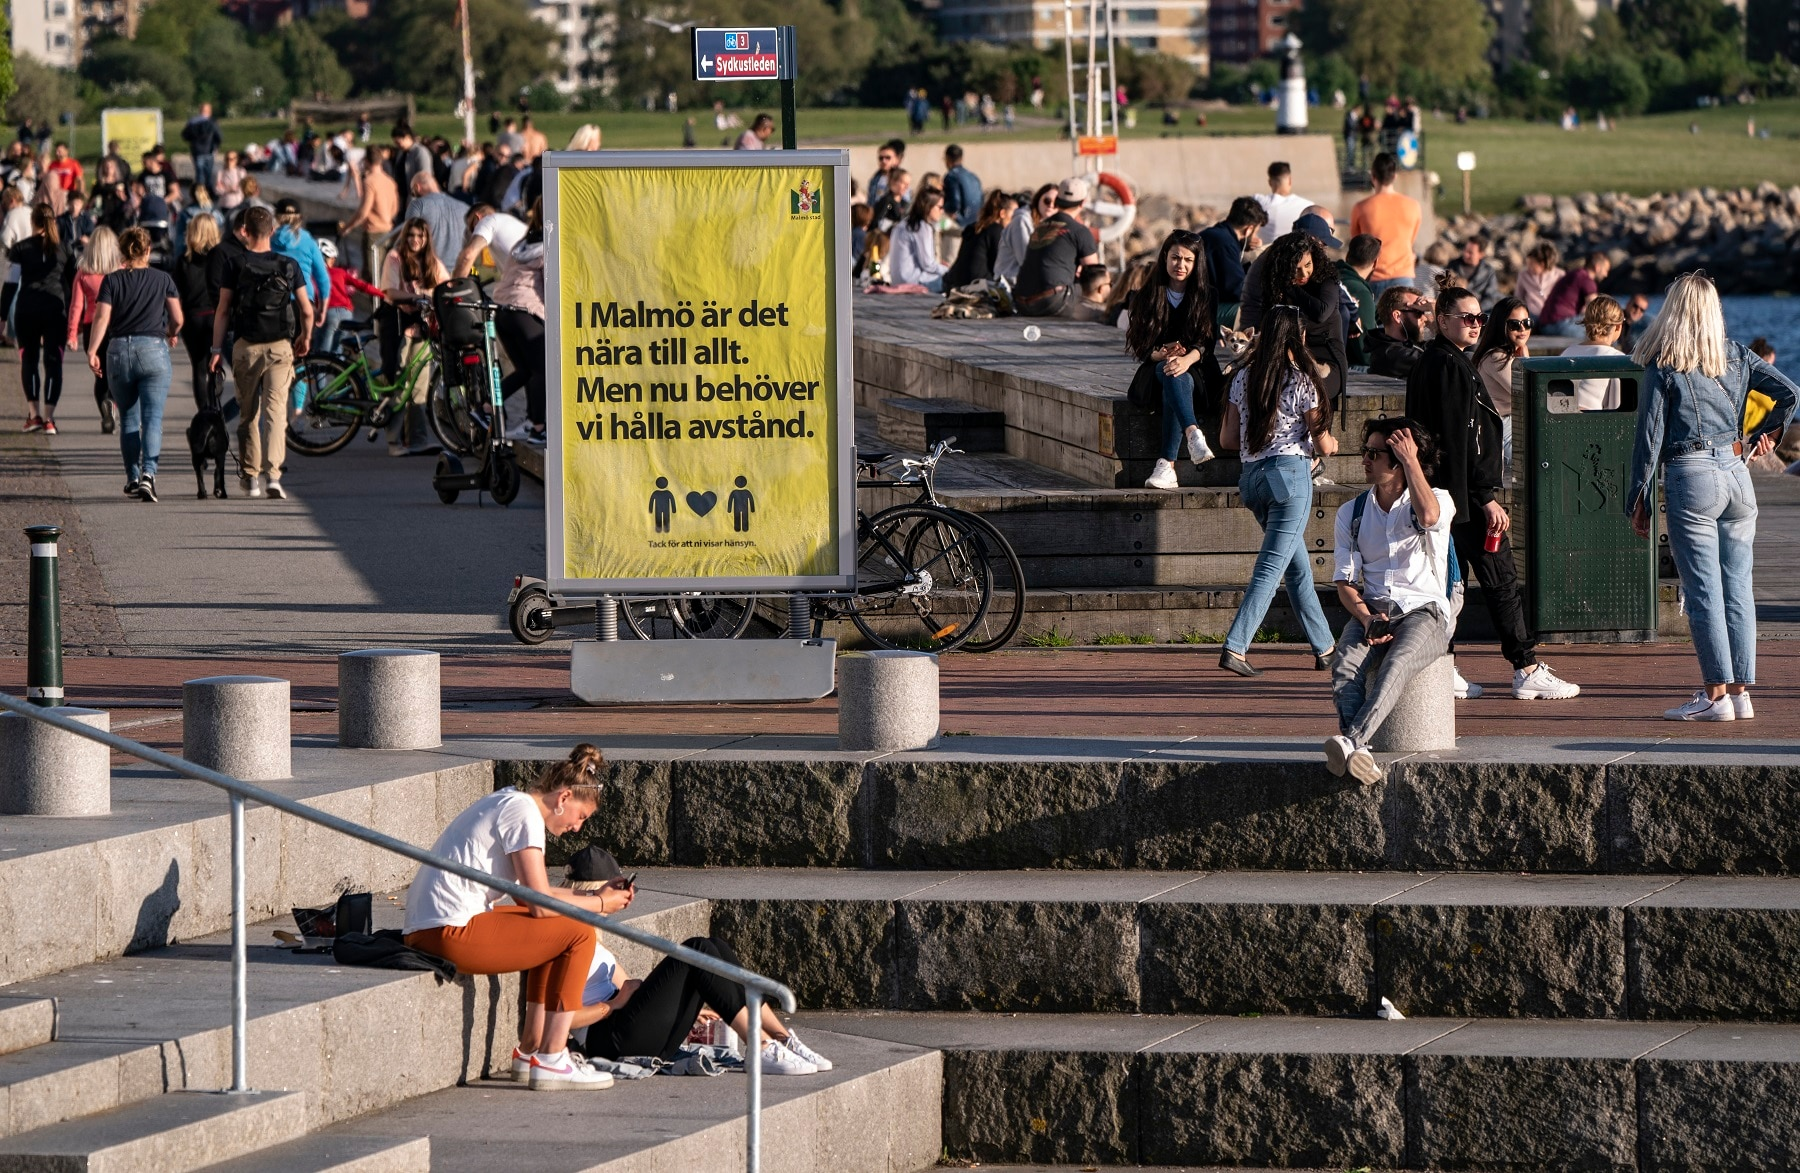 People enjoy the warm evening weather in Malmo, Sweden